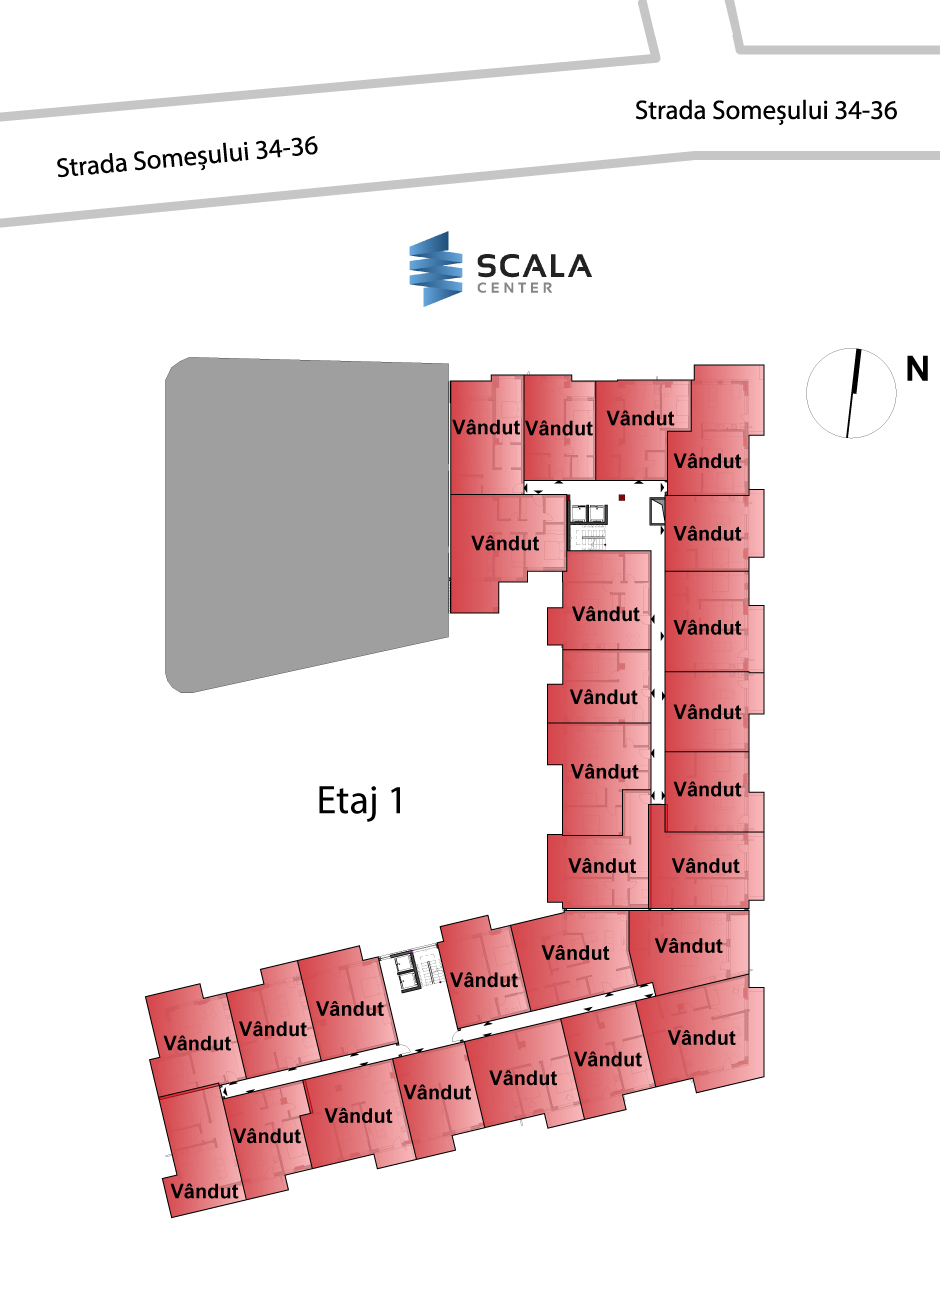 scala center plan etaj 1